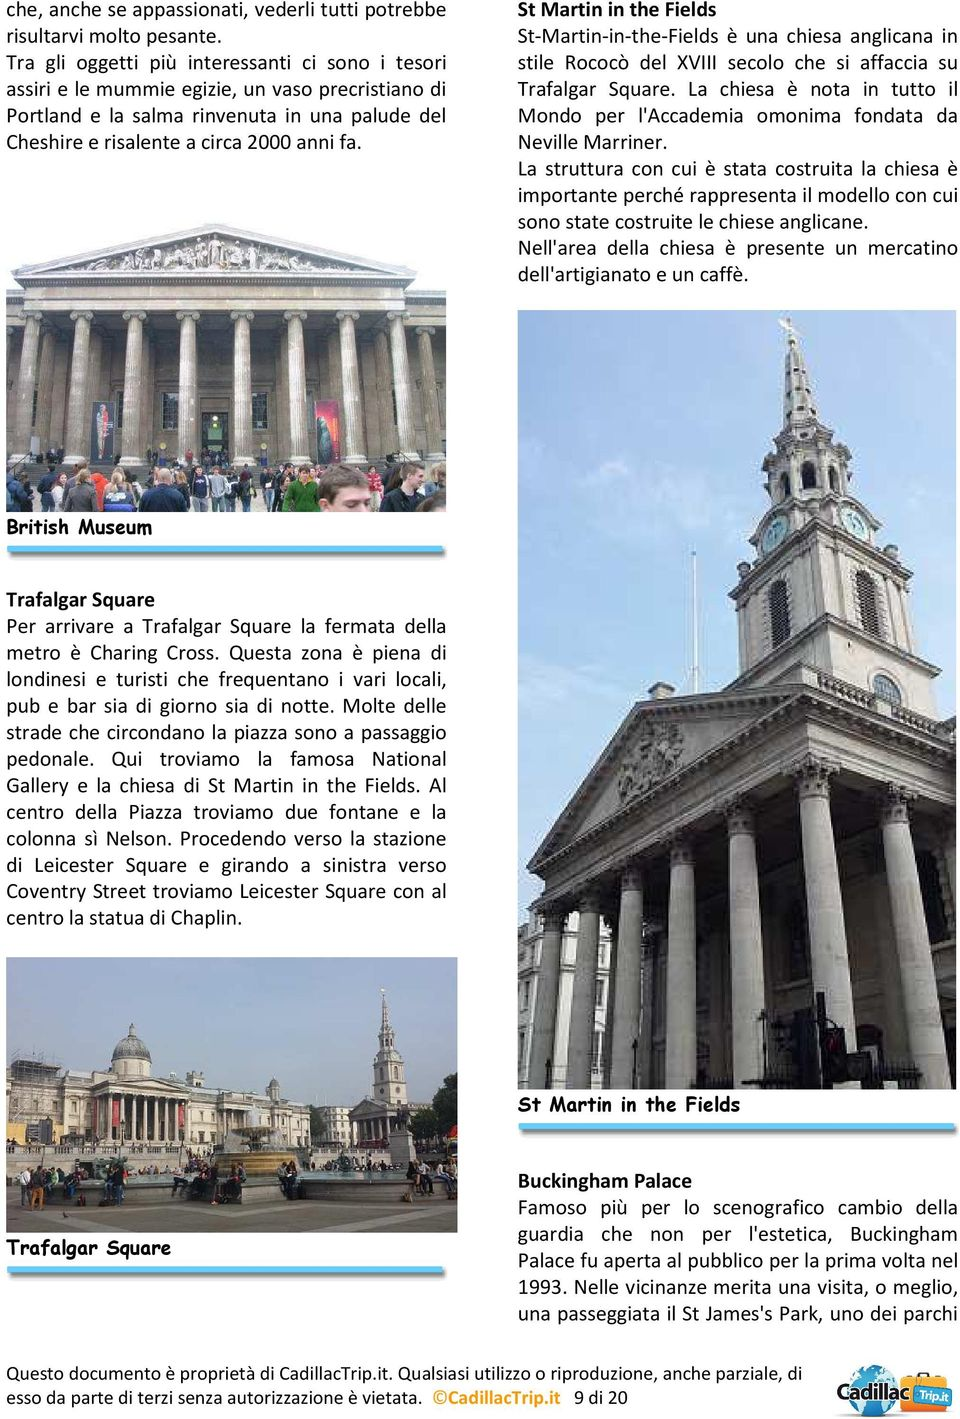 St Martin in the Fields St-Martin-in-the-Fields è una chiesa anglicana in stile Rococò del XVIII secolo che si affaccia su Trafalgar Square.